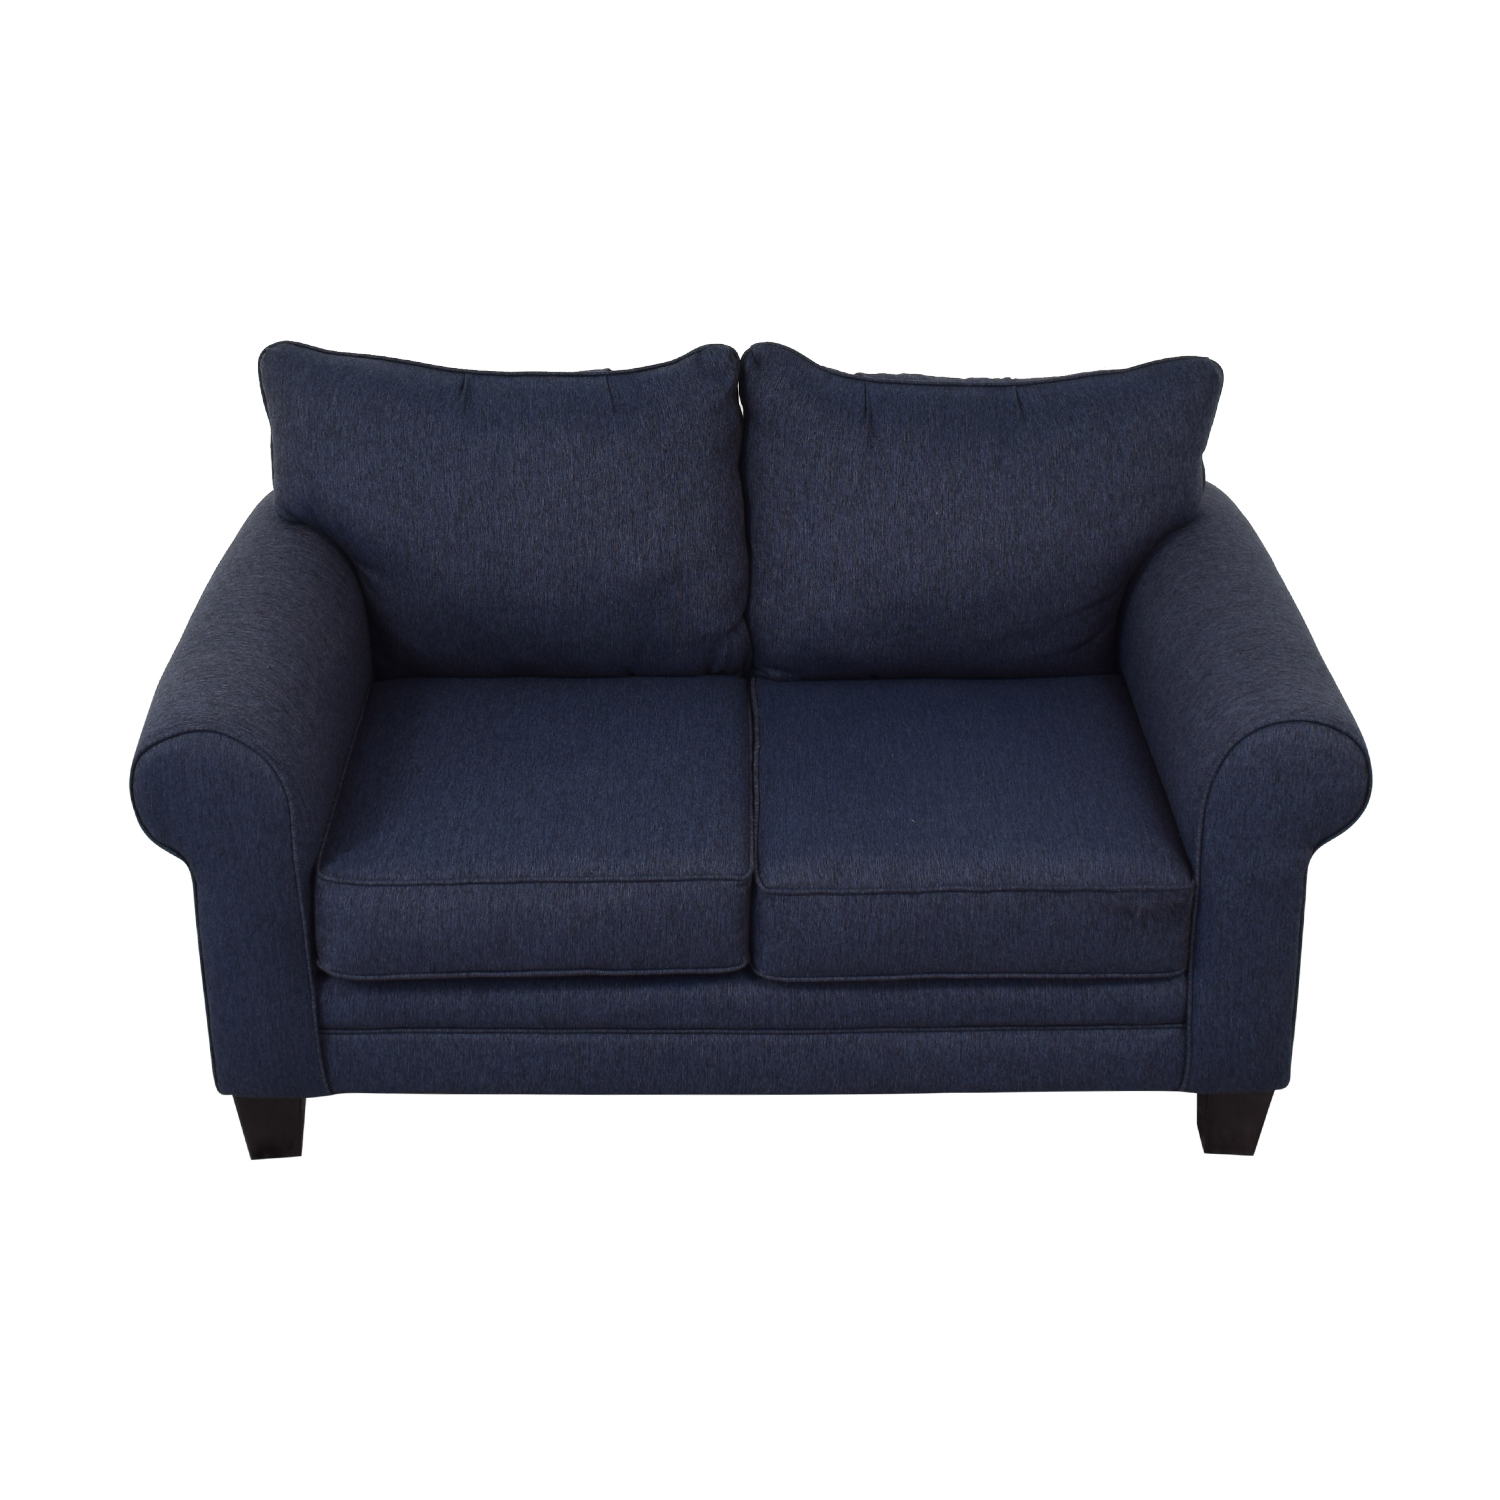 shop Raymour & Flanigan McKinley Loveseat Raymour & Flanigan Loveseats